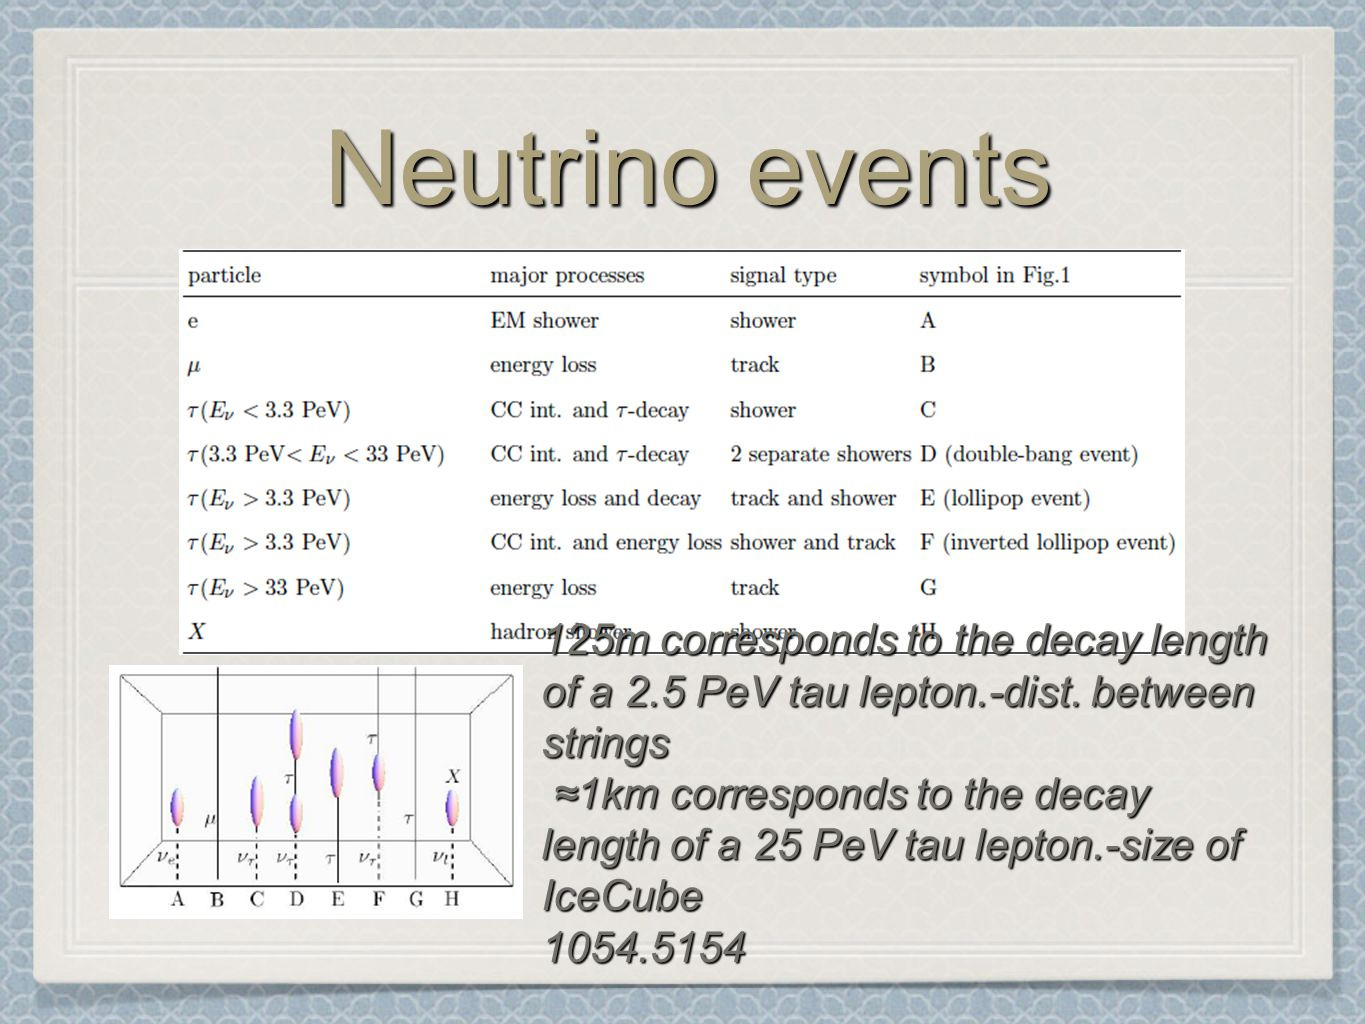 Neutrino events 125m corresponds to the decay length of a 2.5 PeV tau lepton.-dist.